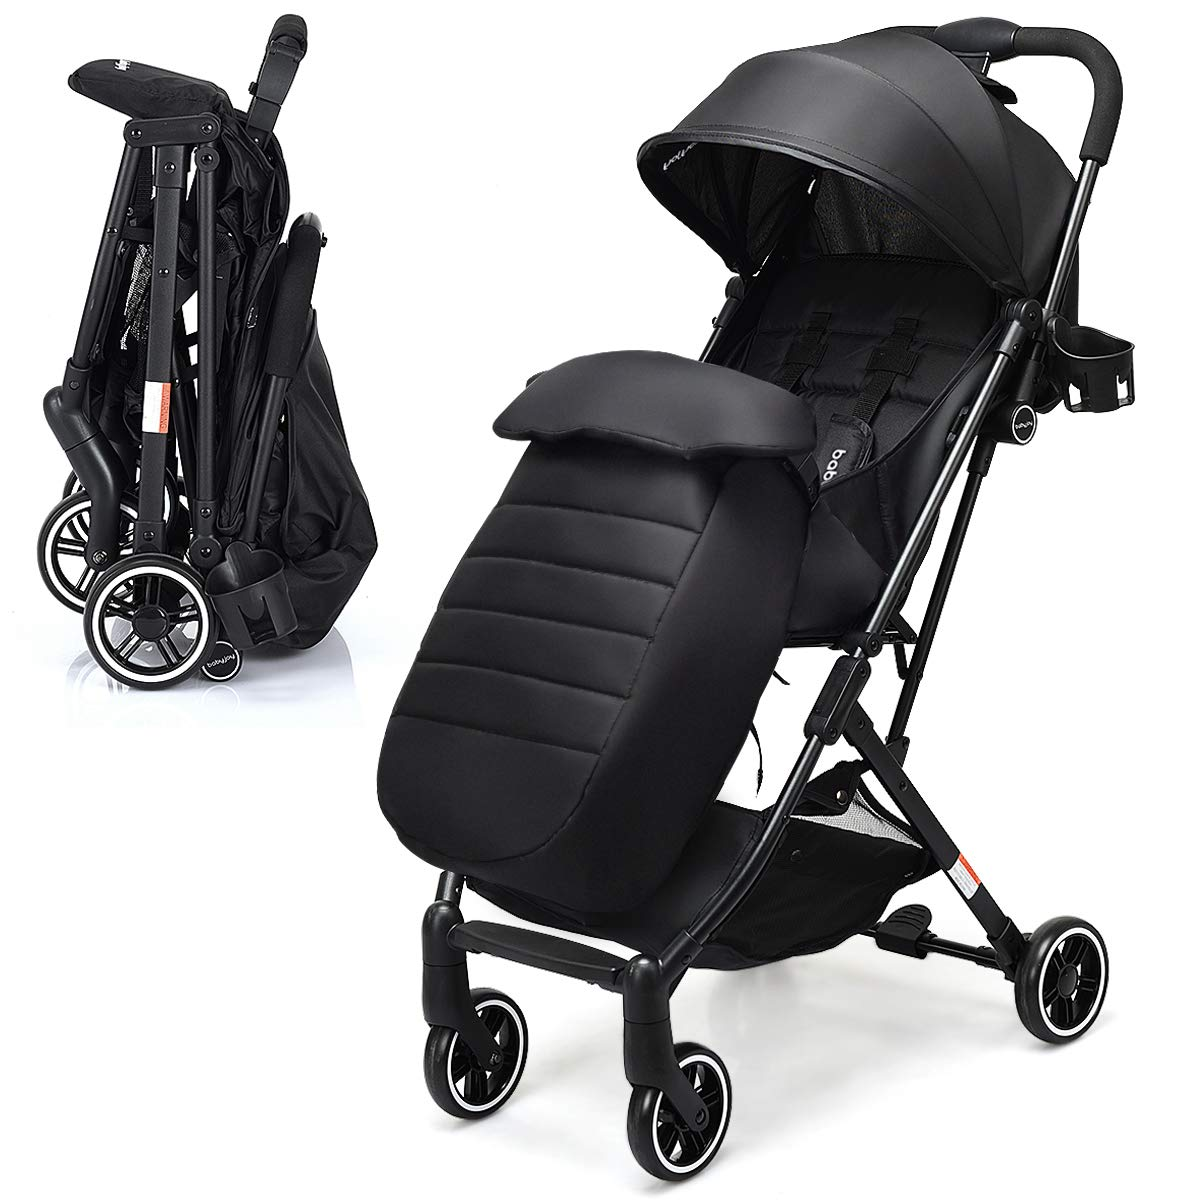 BABY JOY Stroller, Pram Baby Carriage, Lightweight Stroller with 5-Point Harness, Multi-Position Reclining Seat, Warm Foot Cover, Extended Canopy, Easy Folding for Travel, Airplane Compartment (Black)